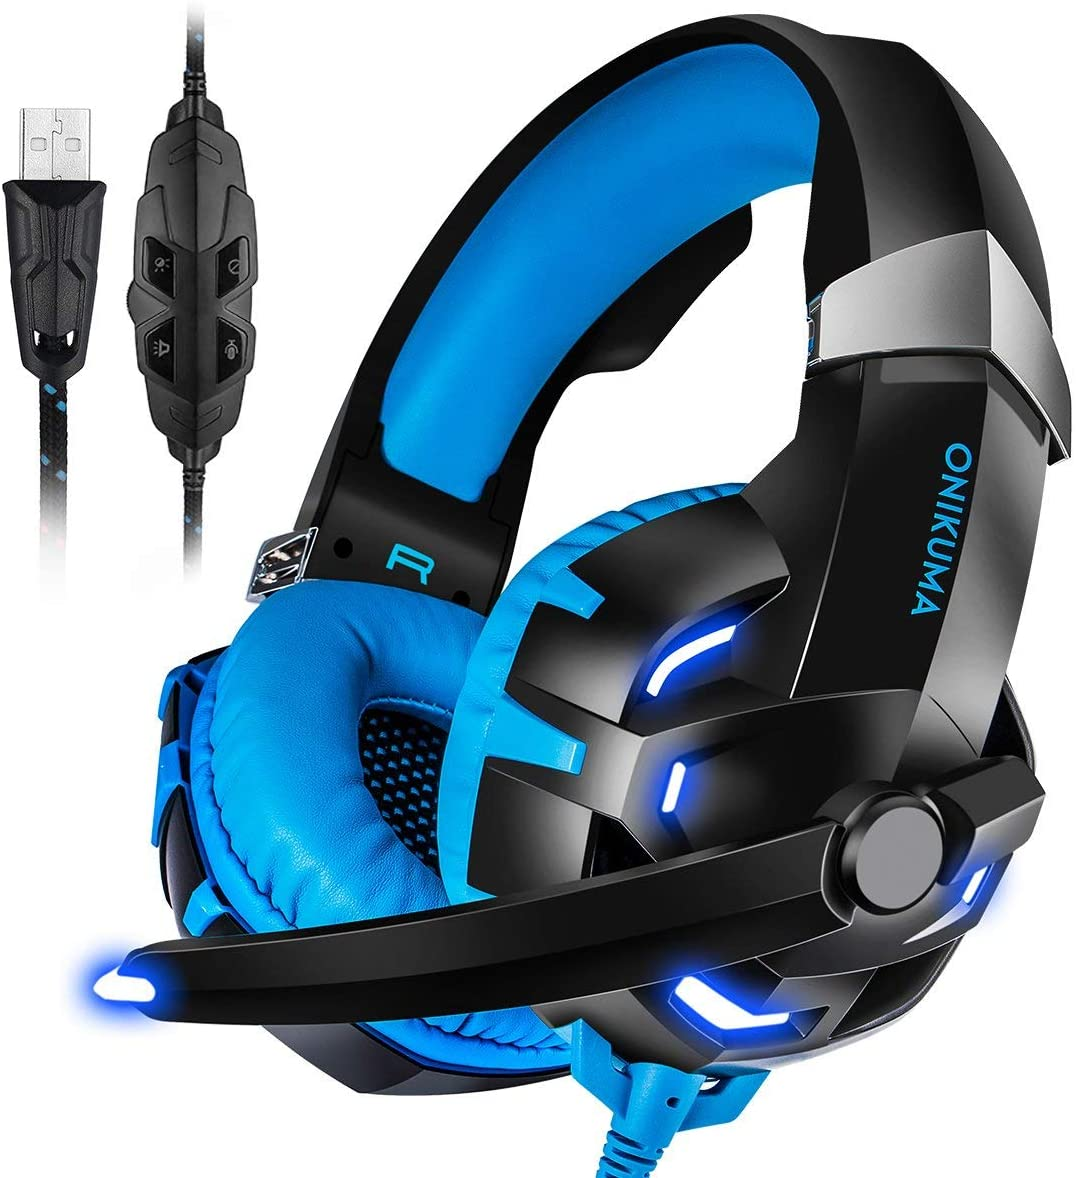 PC Gaming Headset ONIKUMA 7.1 Surround Sound USB Gaming Headset Crystal Clear Sound with Noise Isolating Mic Over-ear Deep Bass Volume Control LED Light for PC Mac Computer Gamers Laptop (Blue)